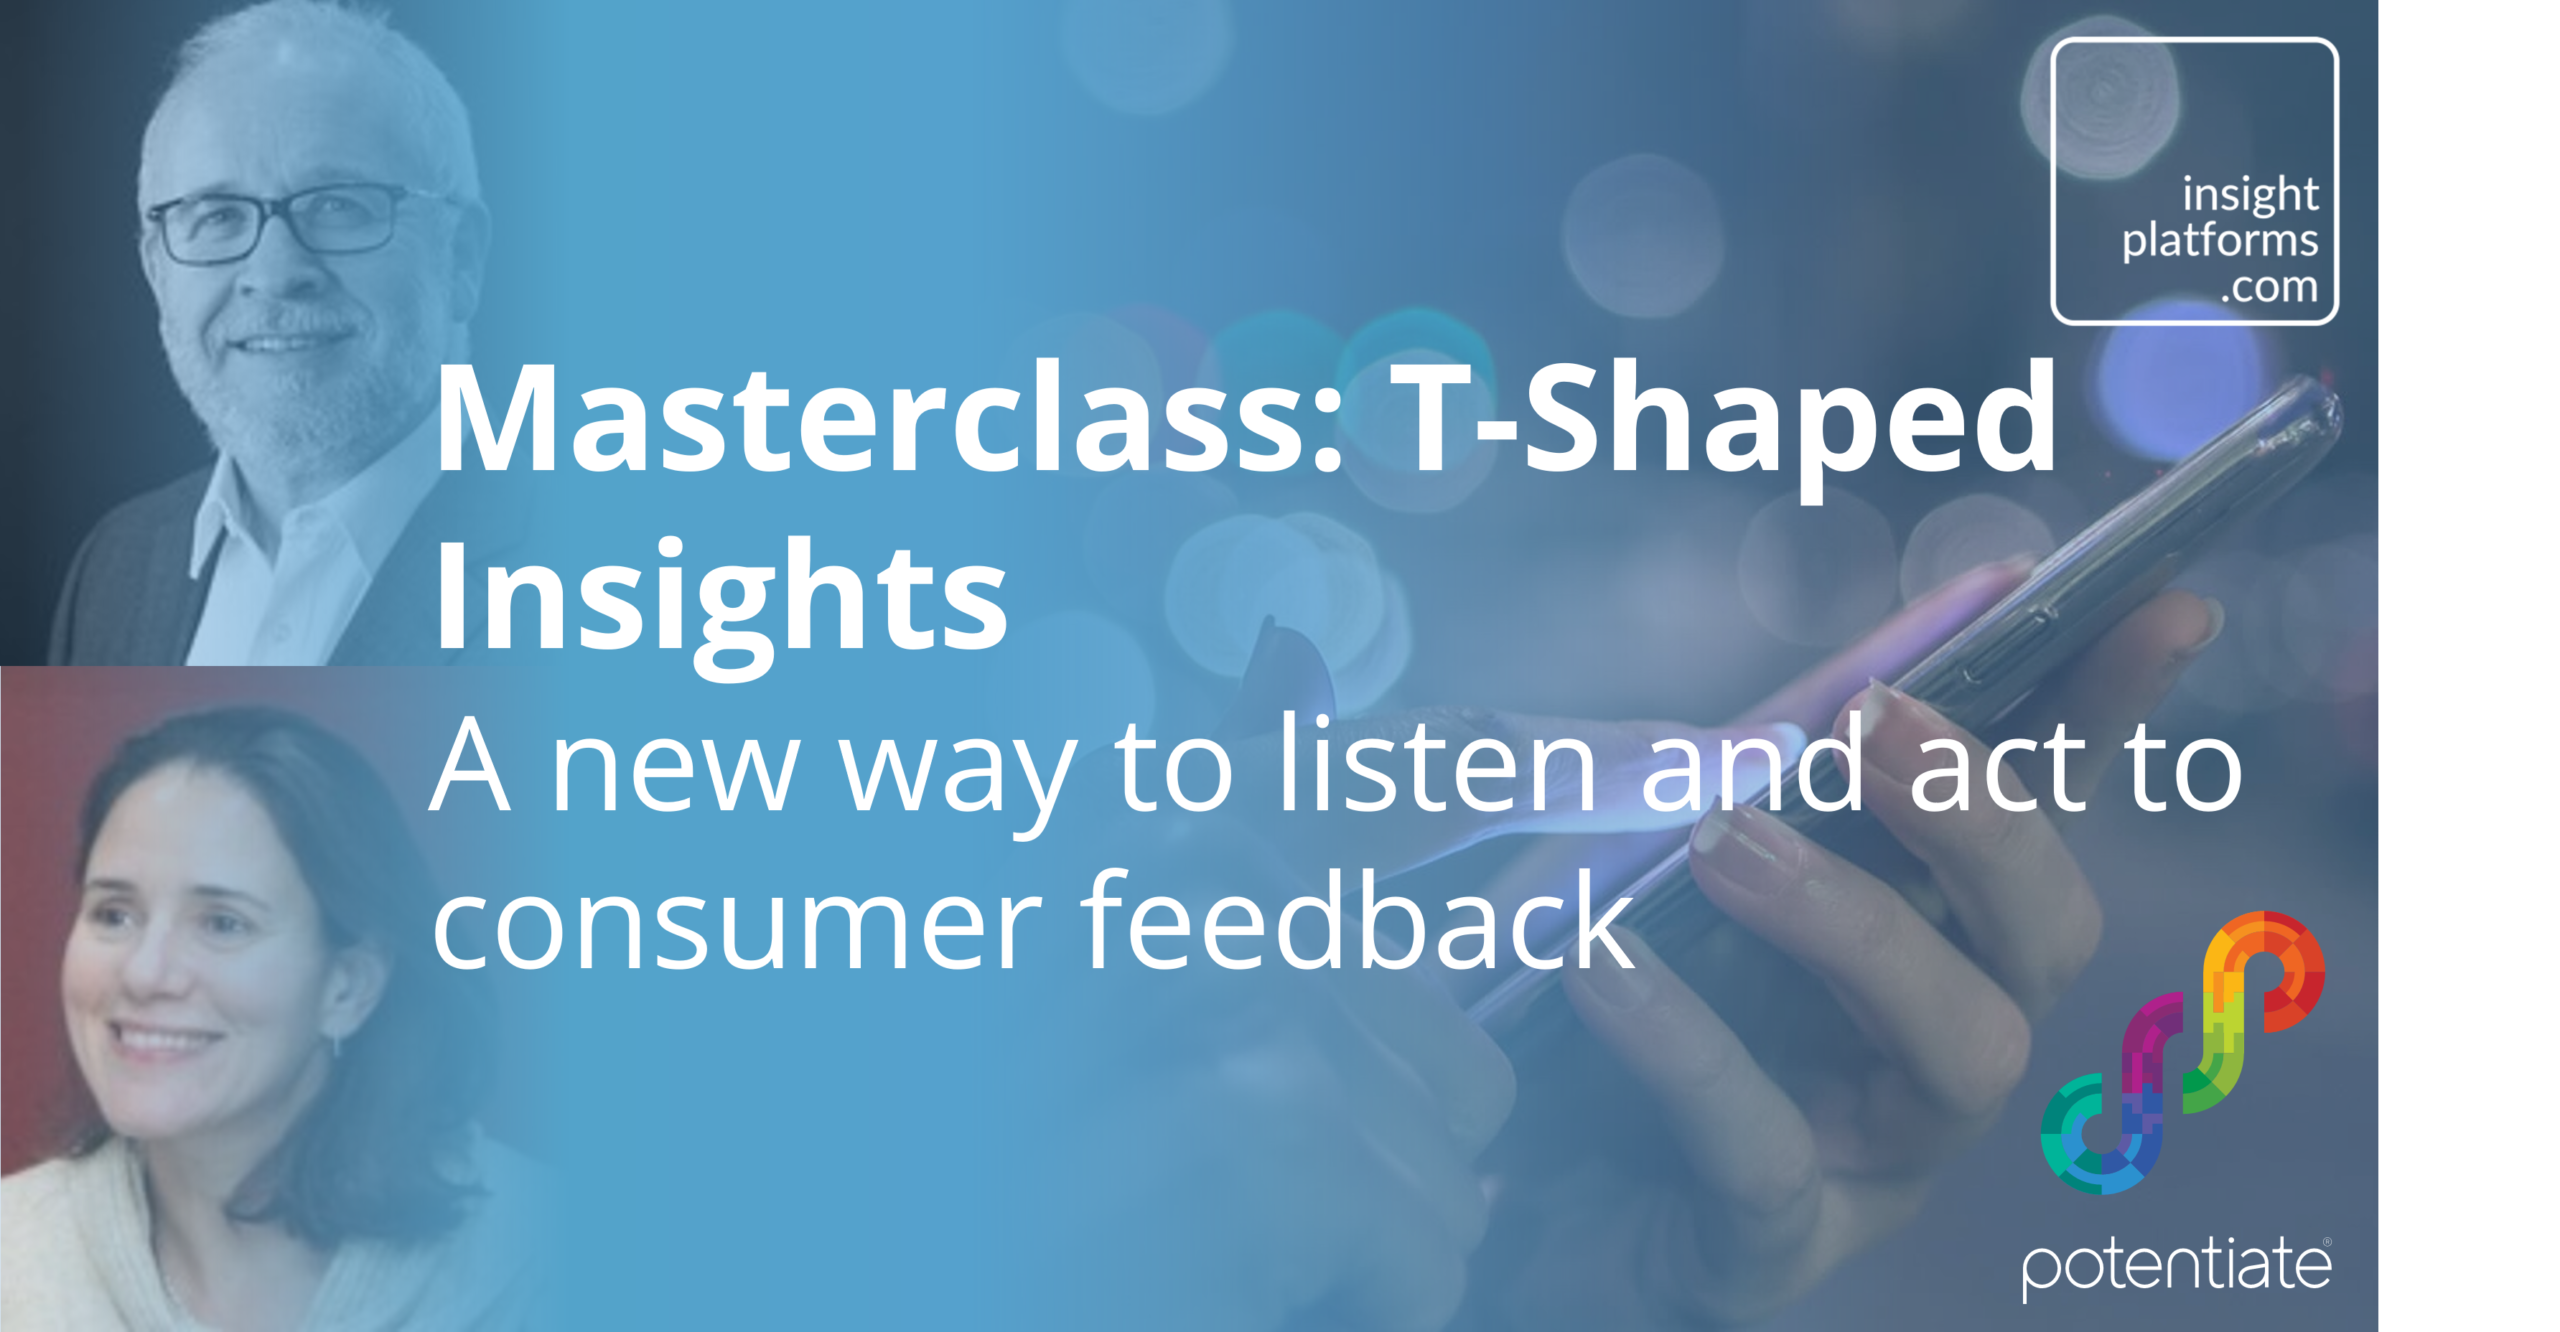 Masterclass T-Shaped Insights_Potentiate_Featured Image